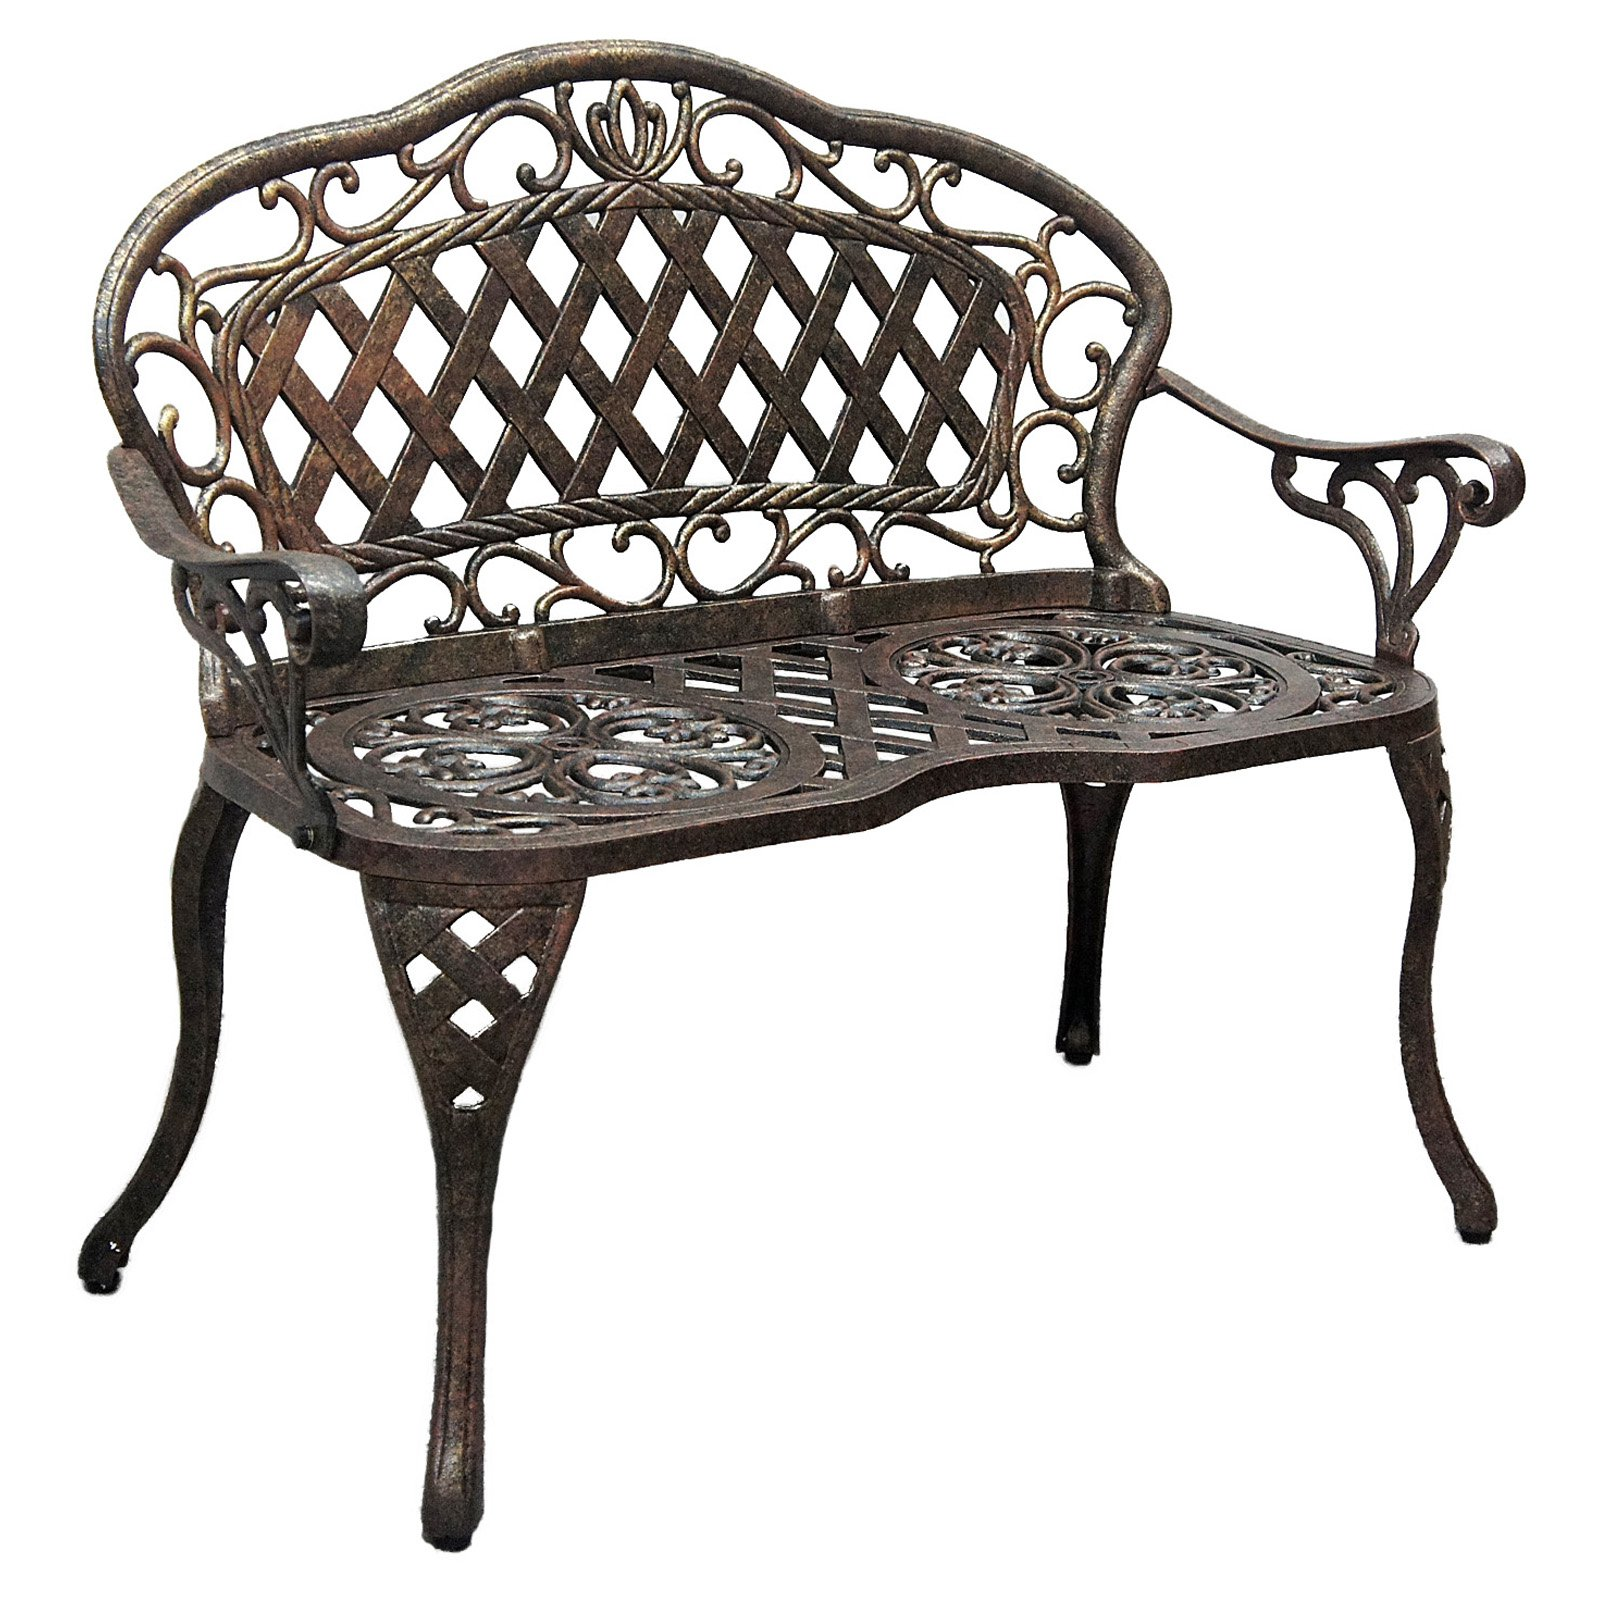 Innova Regis Loveseat Cast Iron/Cast Aluminum Outdoor Bench